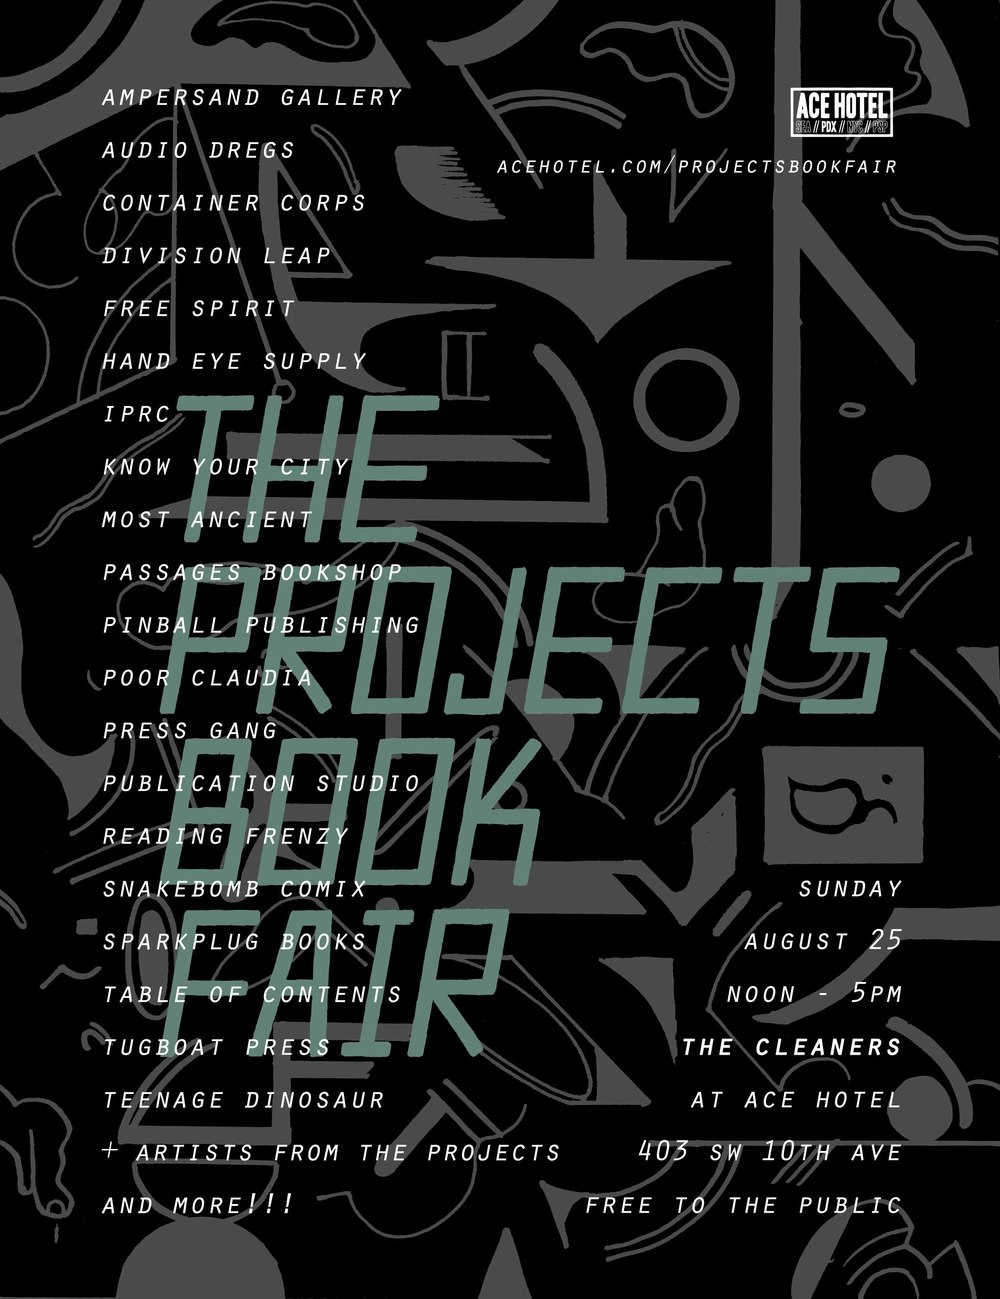 projects_book_black-1.jpg